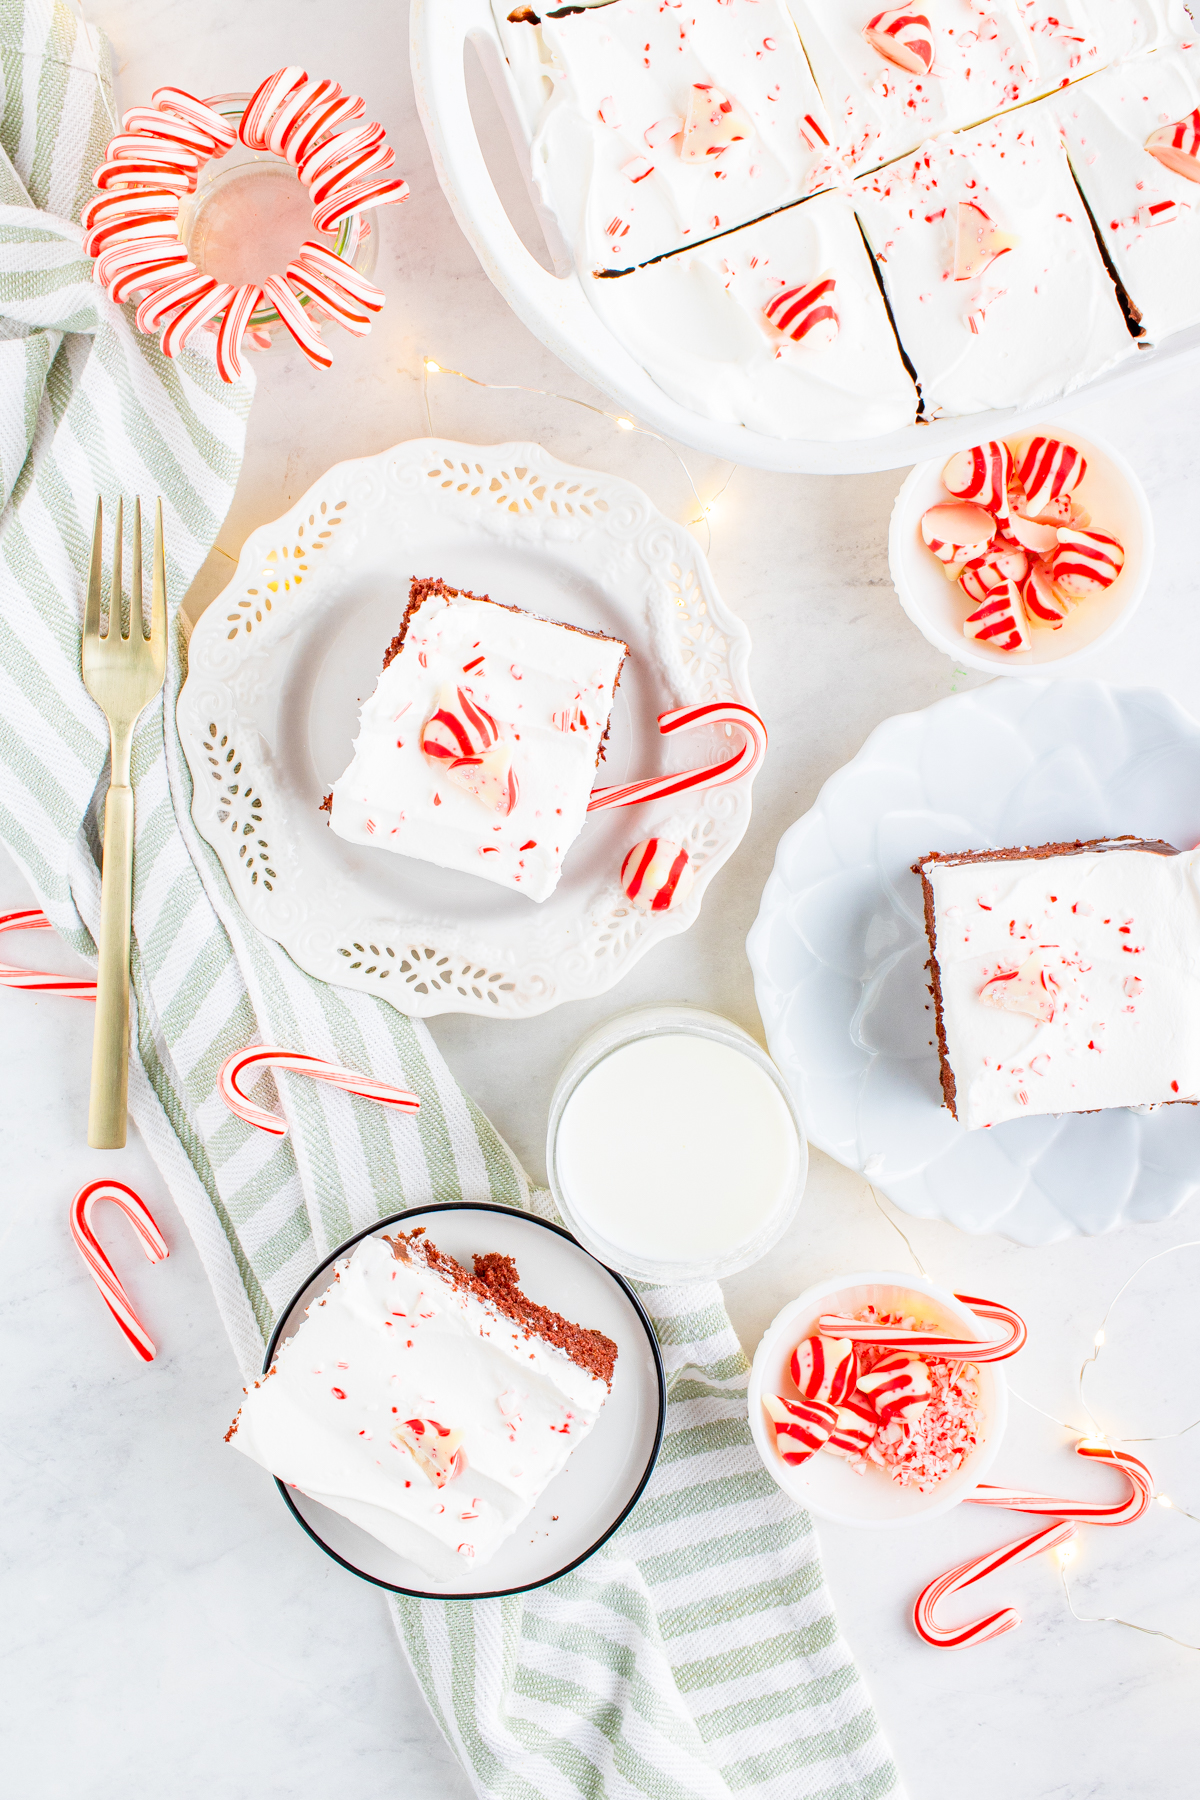 Overhead shot of three slices of cake on white plates